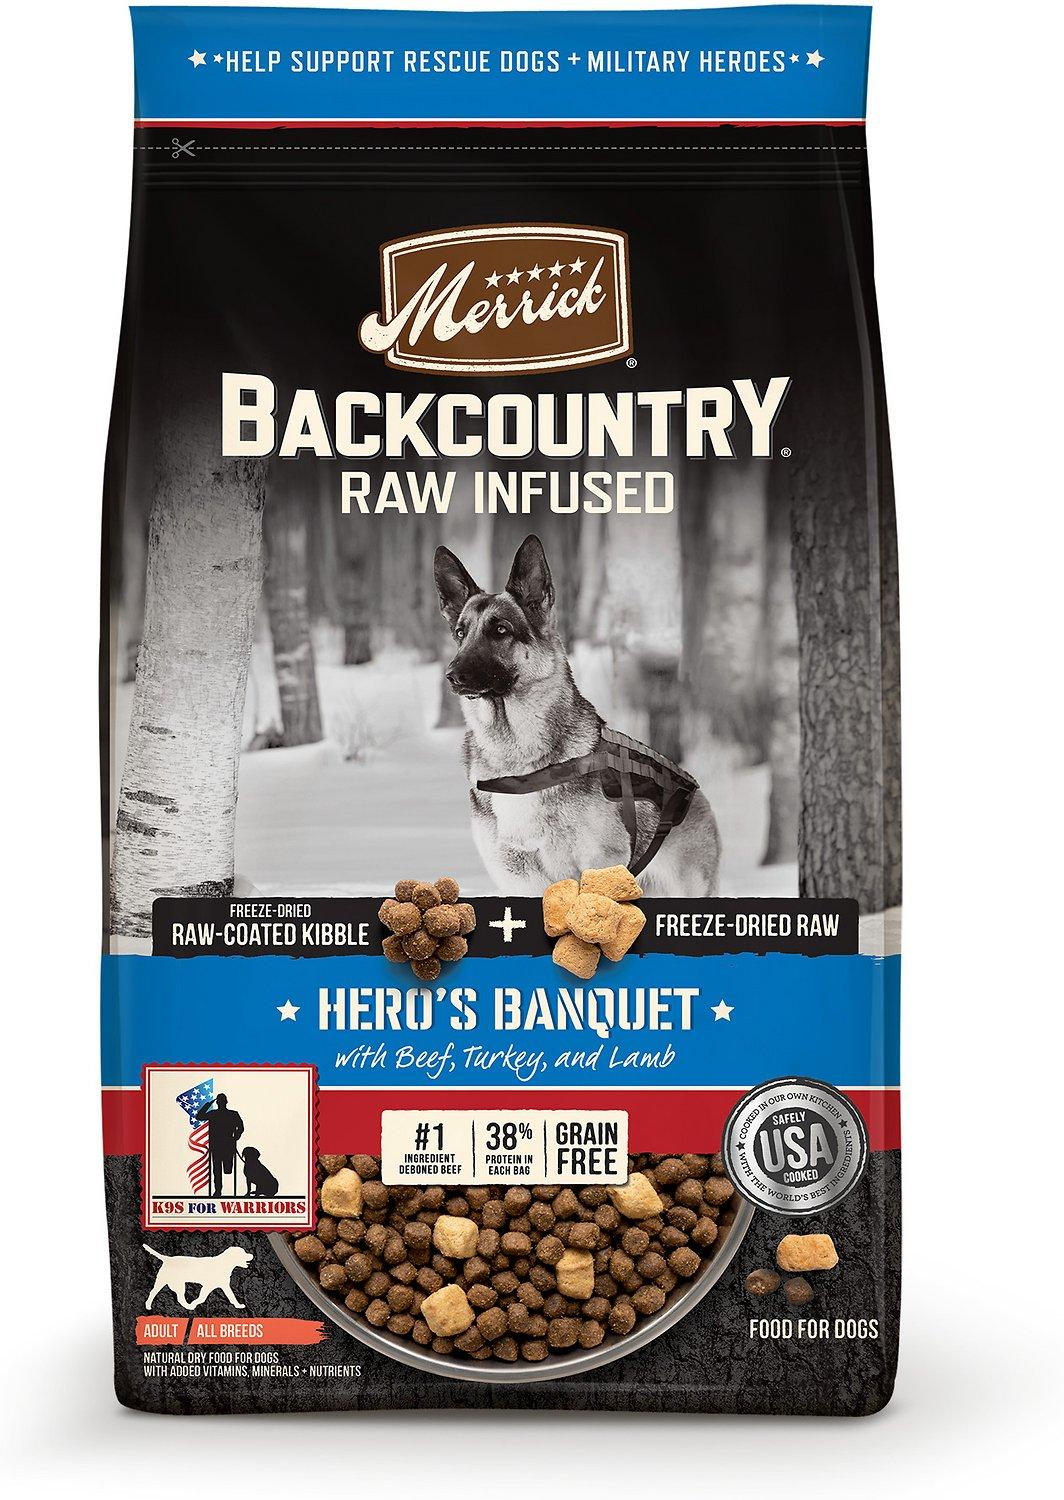 Merrick Backcountry Raw Infused Hero's Banquet Freeze-Dried Dry Dog Food Image